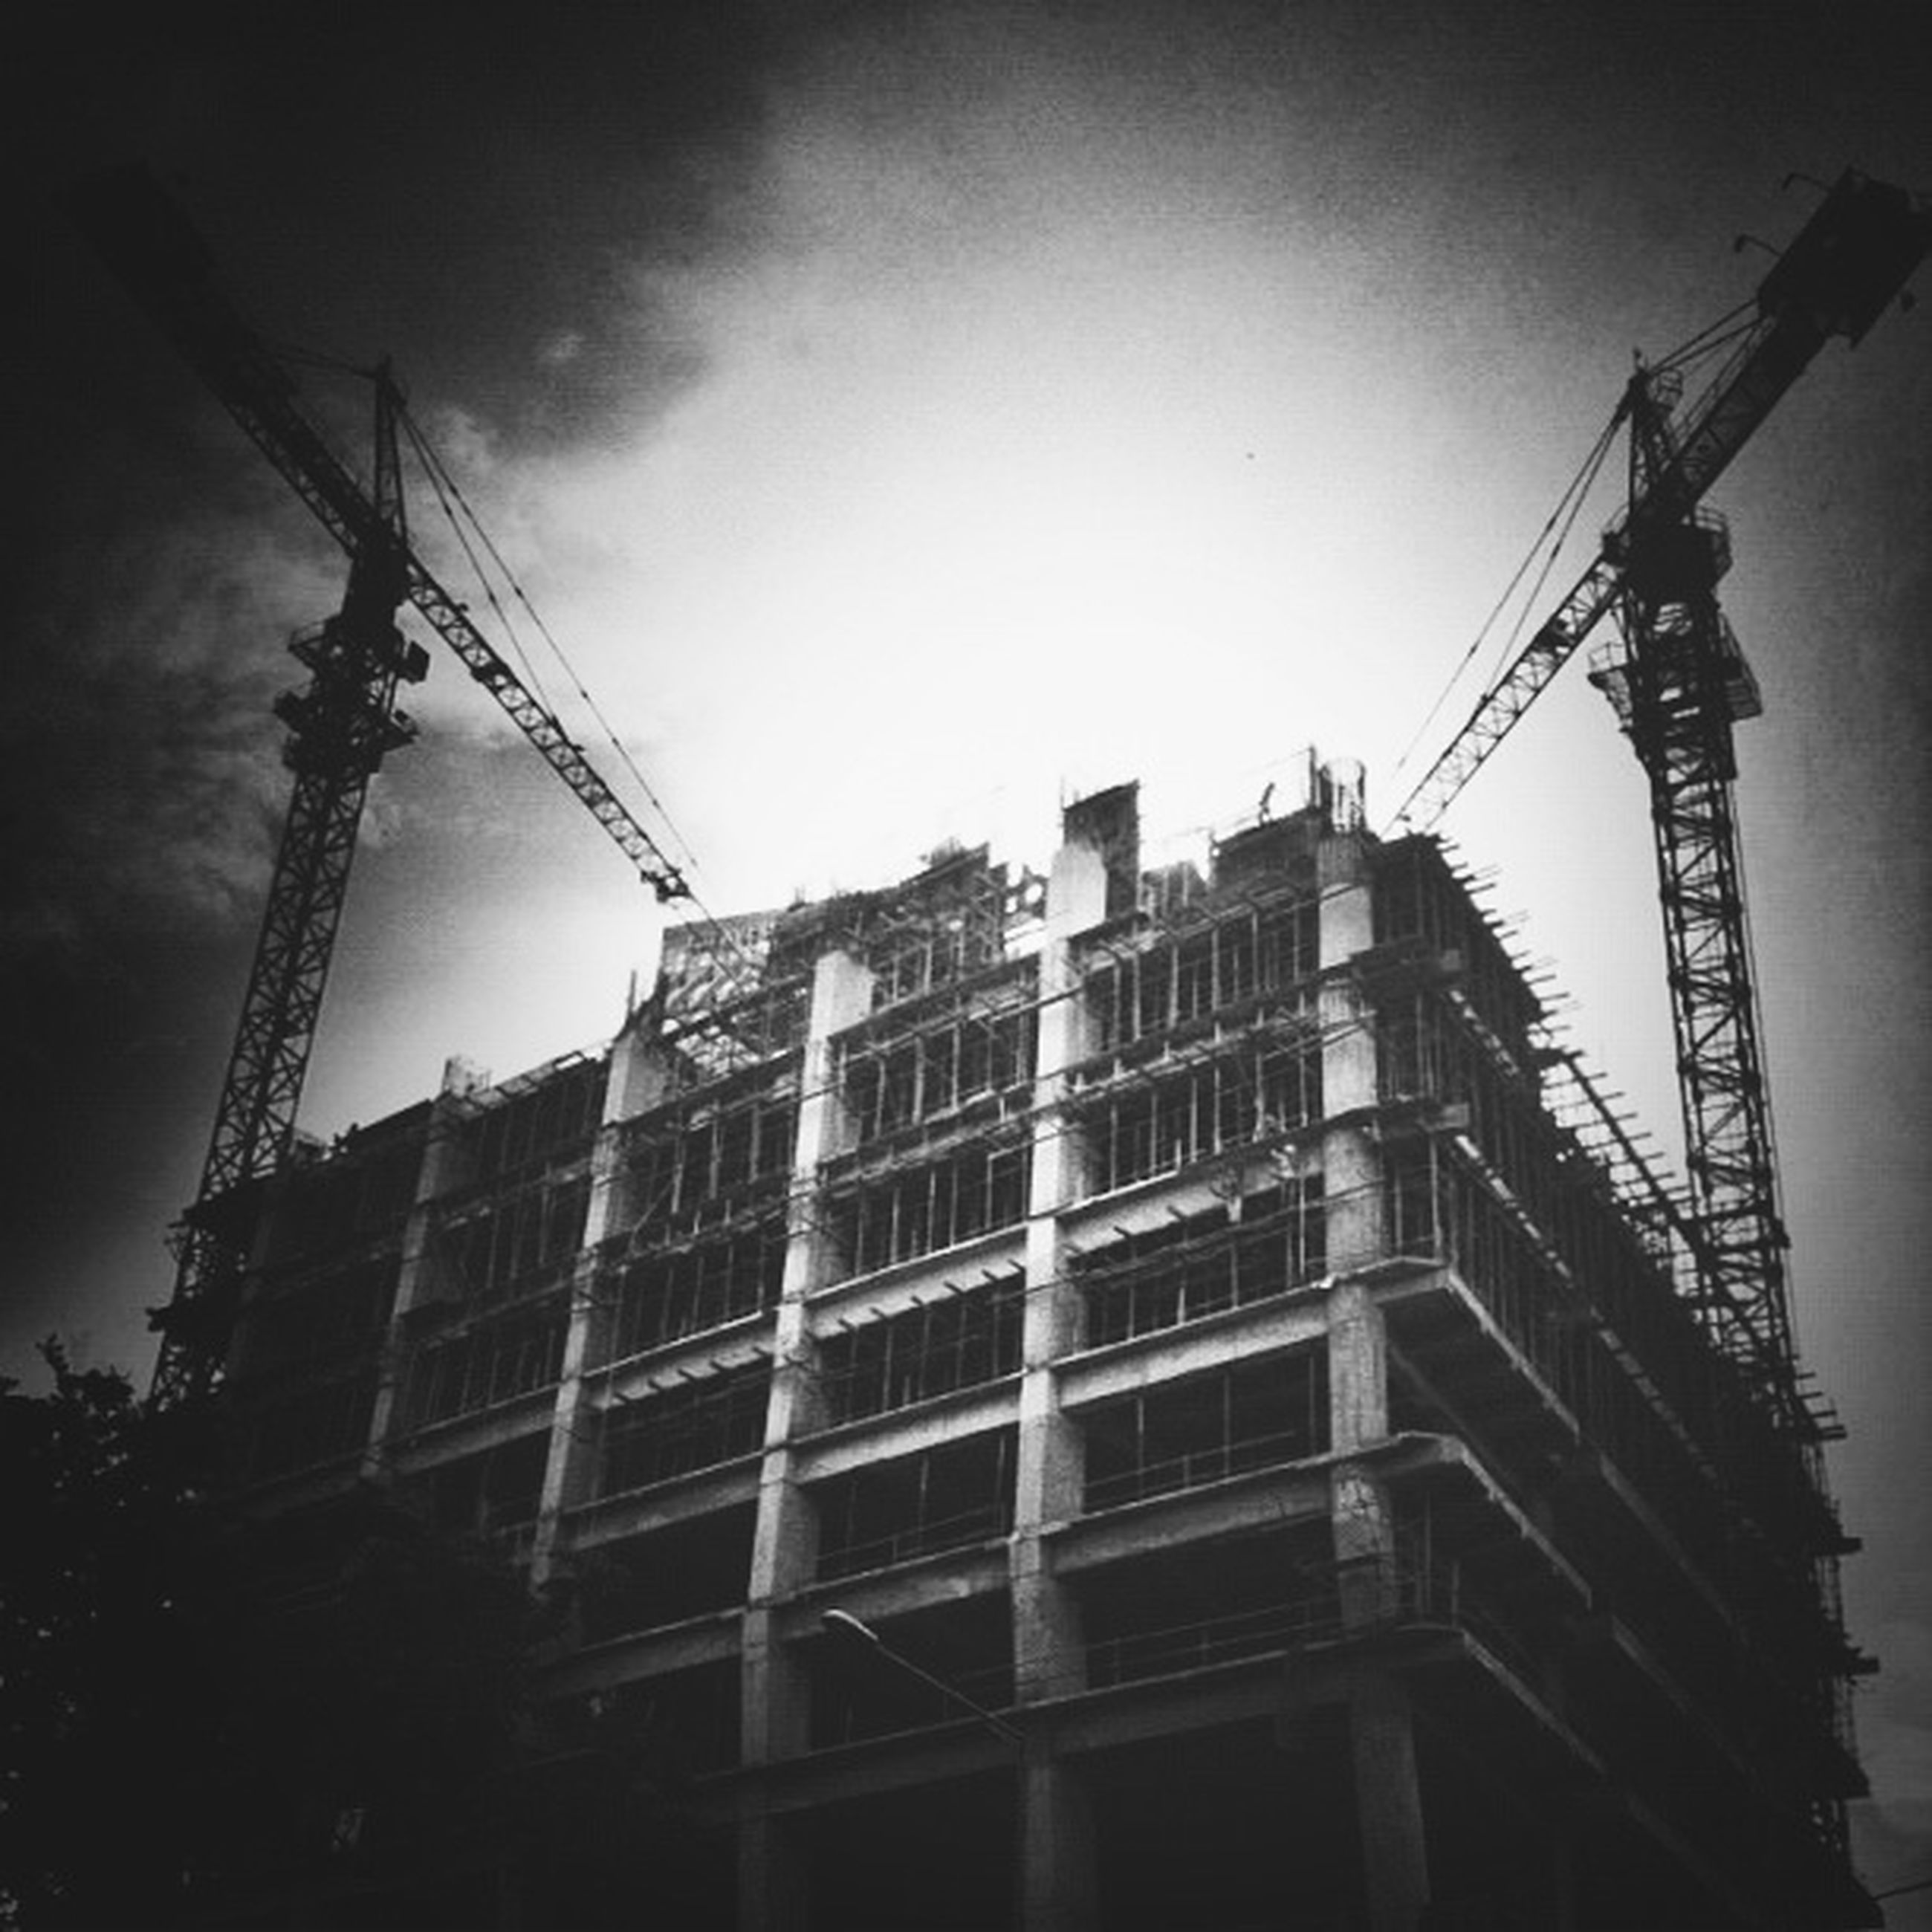 architecture, built structure, low angle view, building exterior, sky, construction site, crane - construction machinery, development, city, building, tall - high, construction, tower, outdoors, clear sky, no people, day, incomplete, power line, residential building